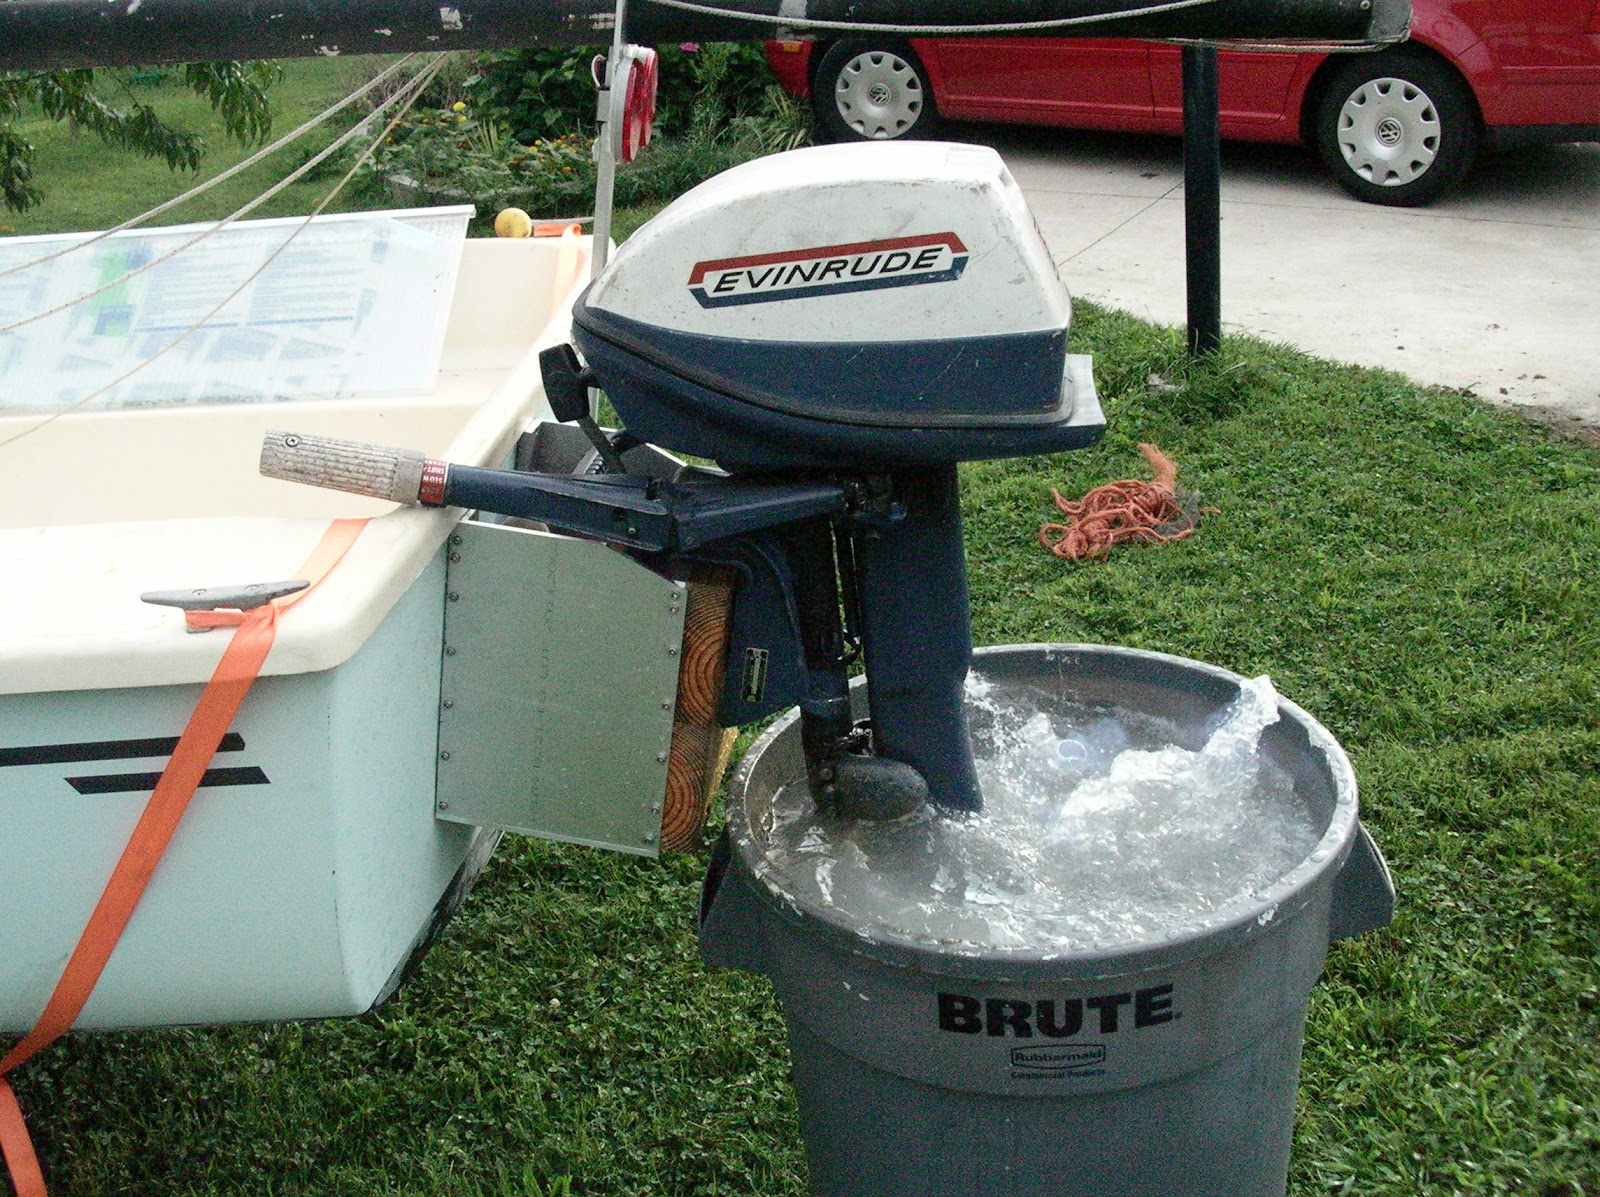 Robert's Projects: 1970 Evinrude 6hp Outboard Motor